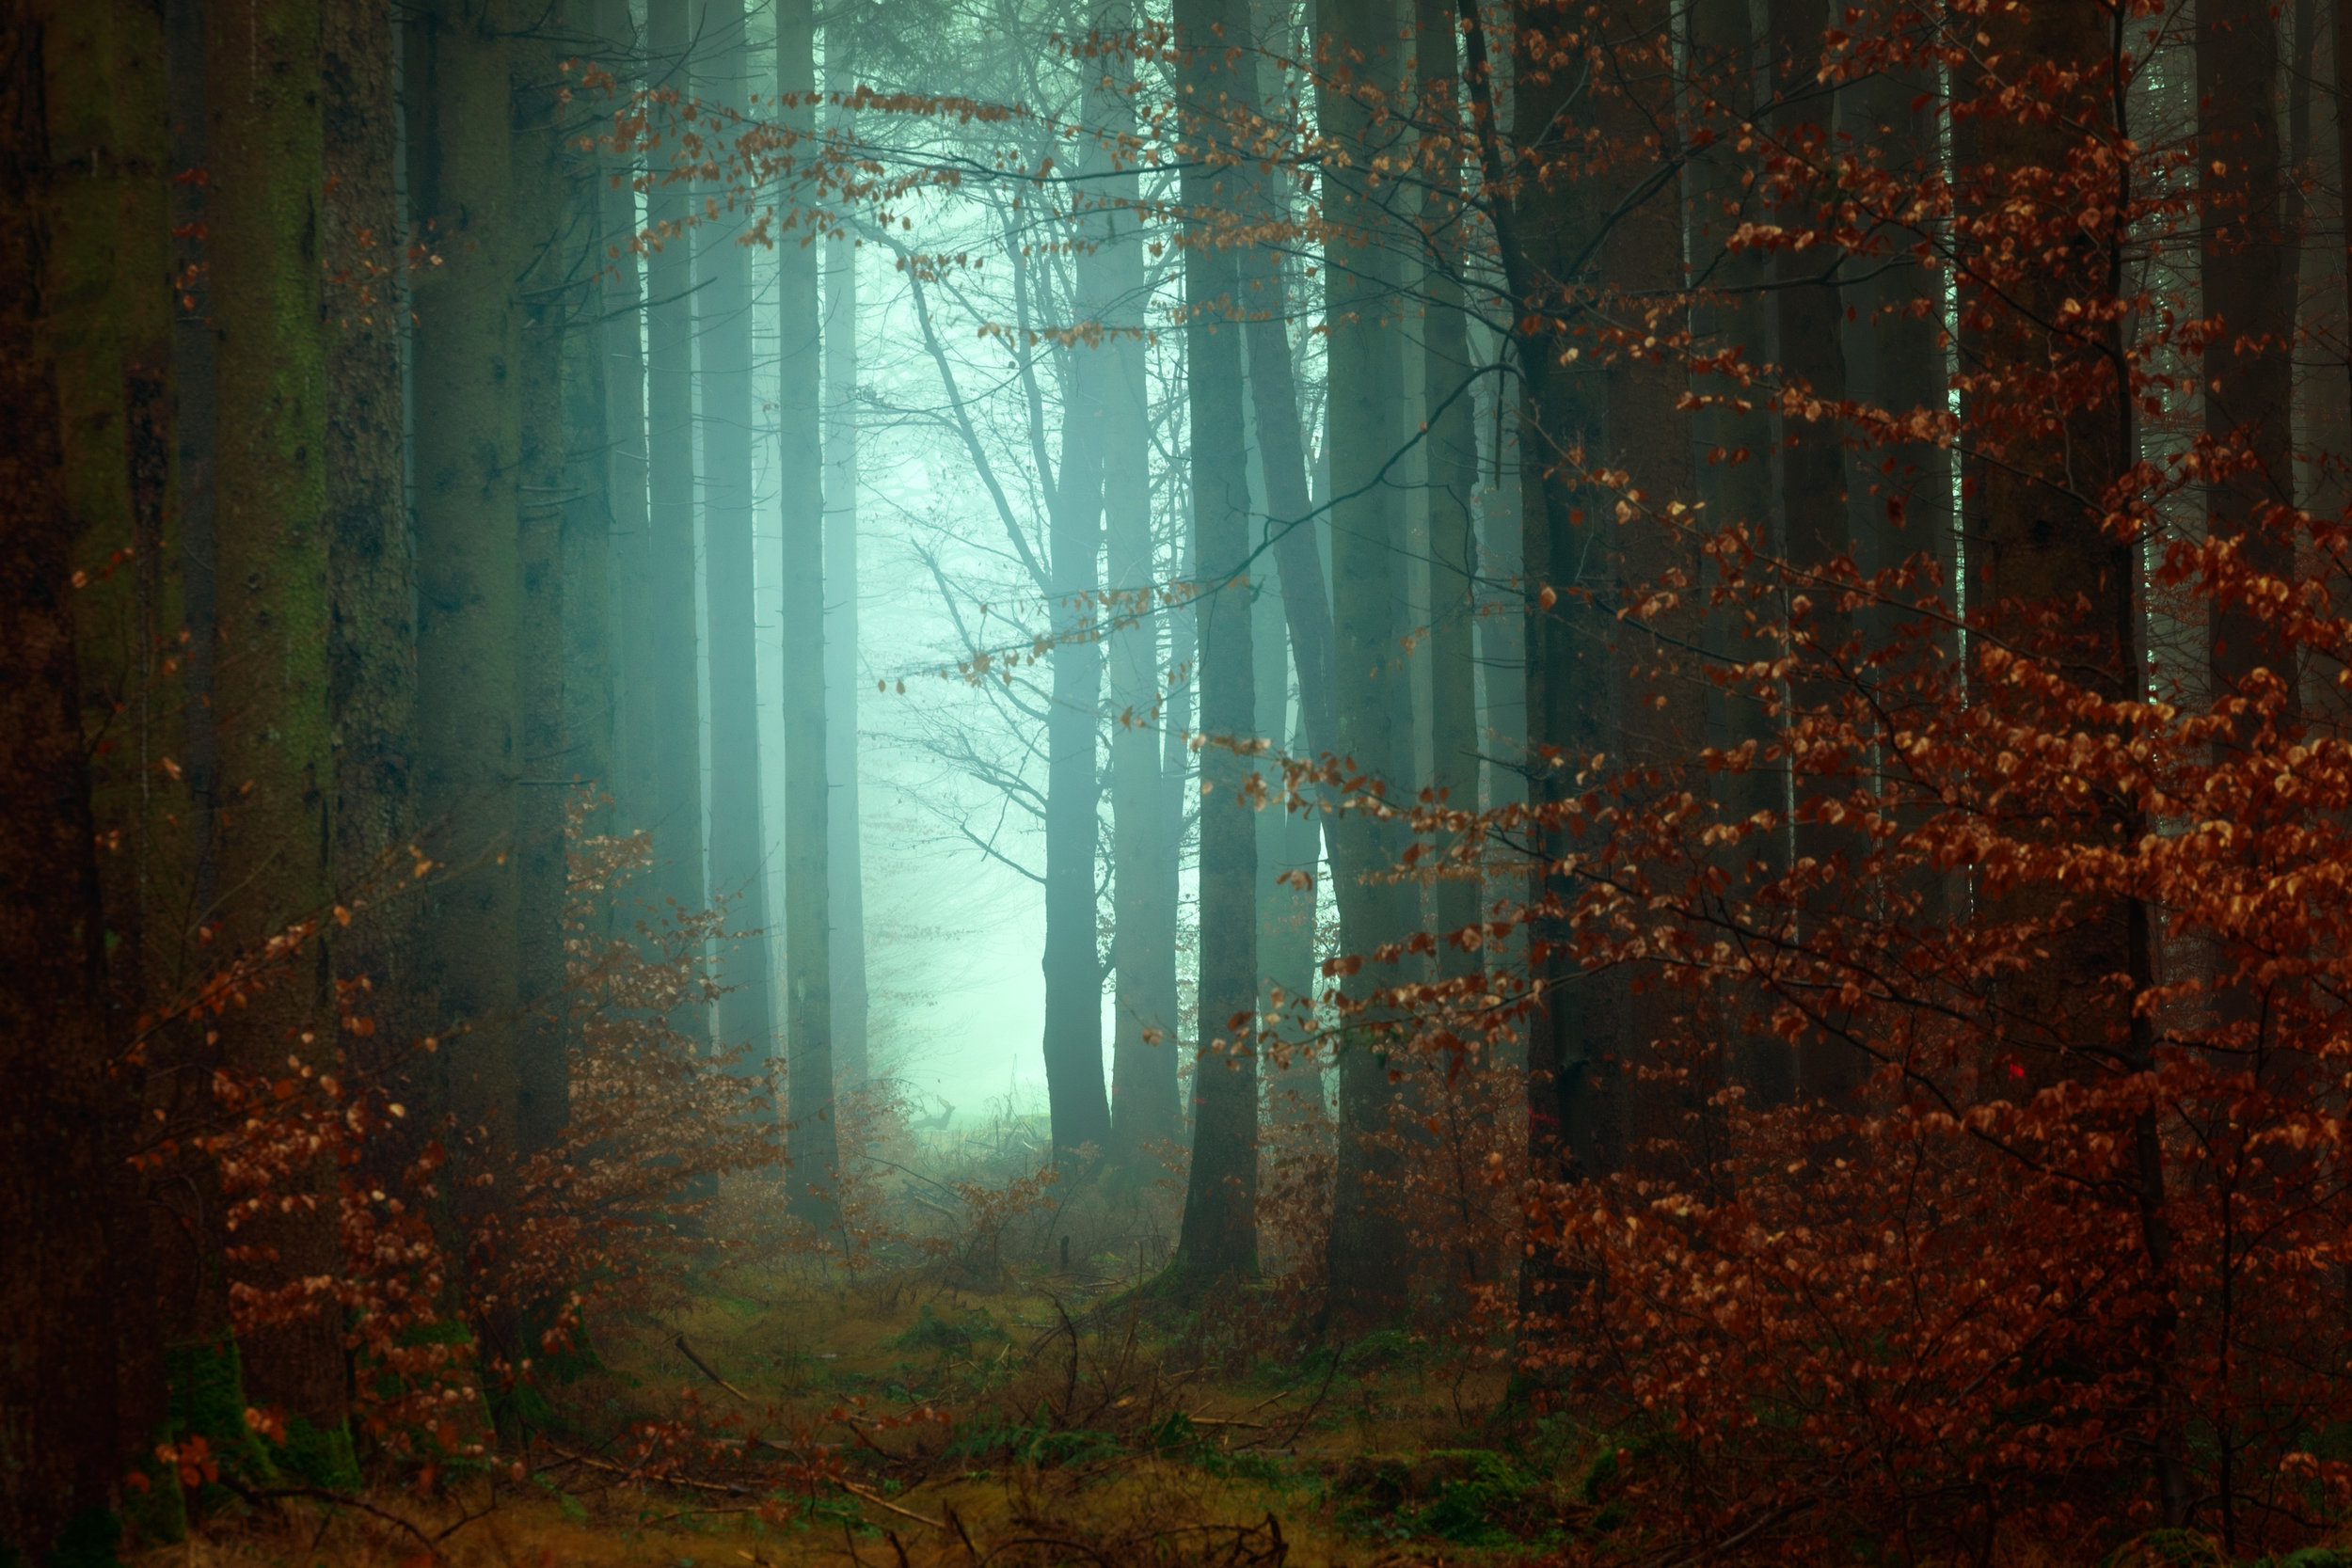 Spooky forest photo by Unsplash